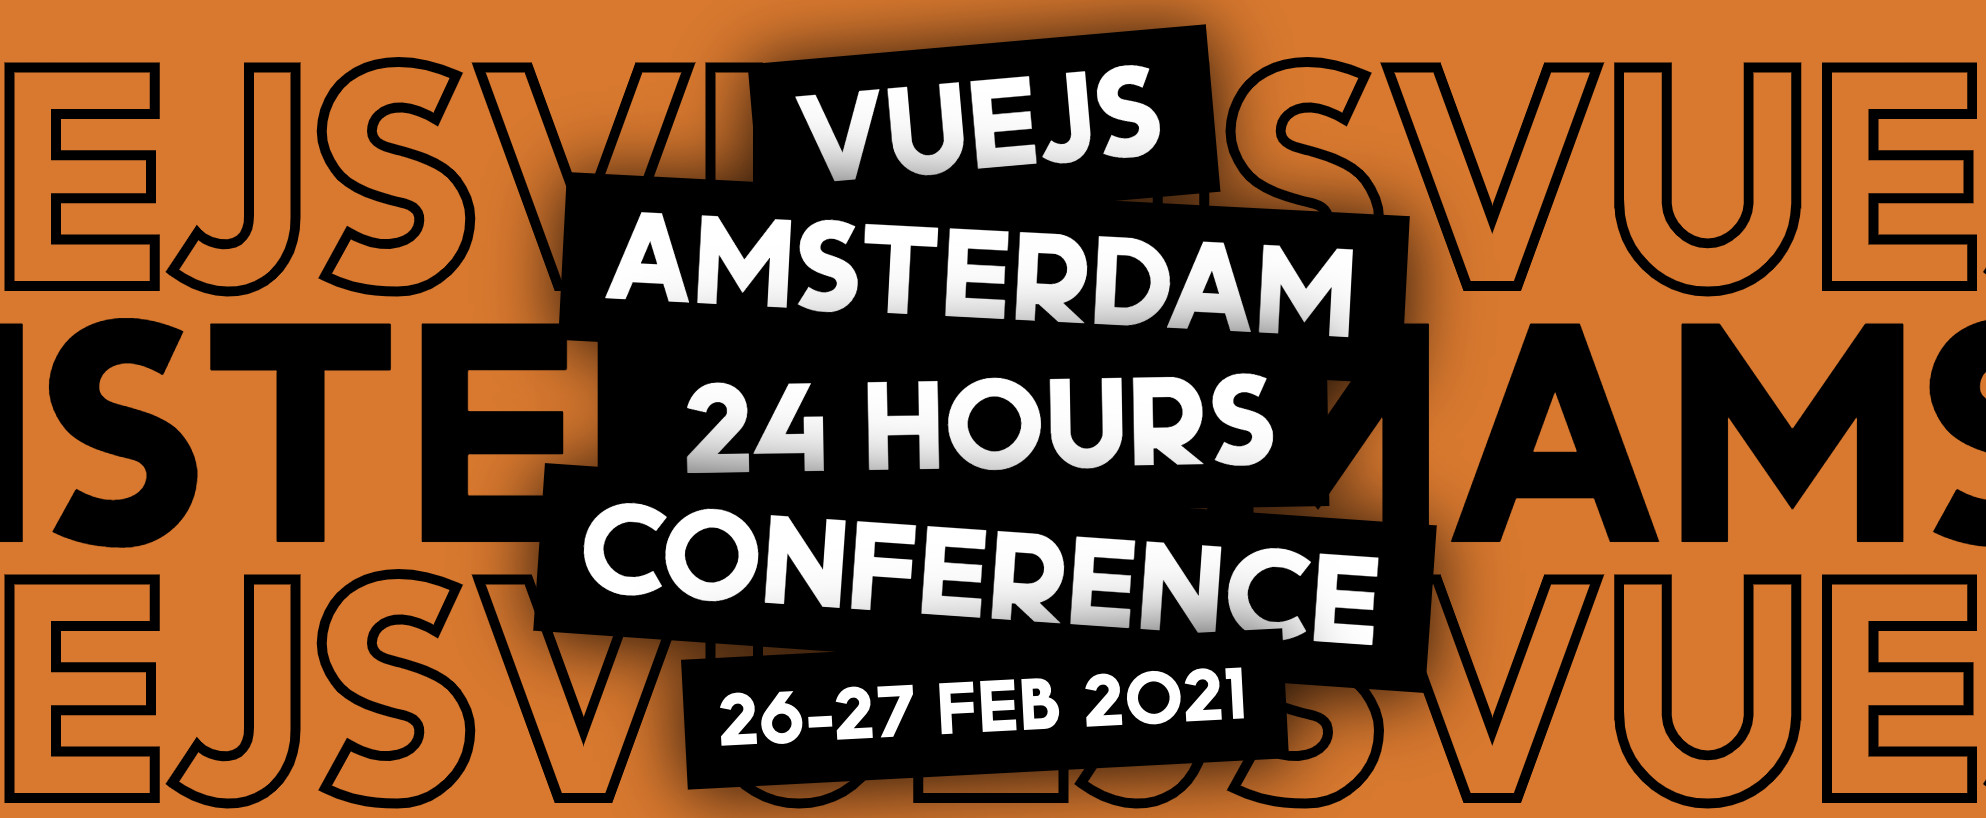 Free Vuejs Amsterdam 24 hour Online Conference